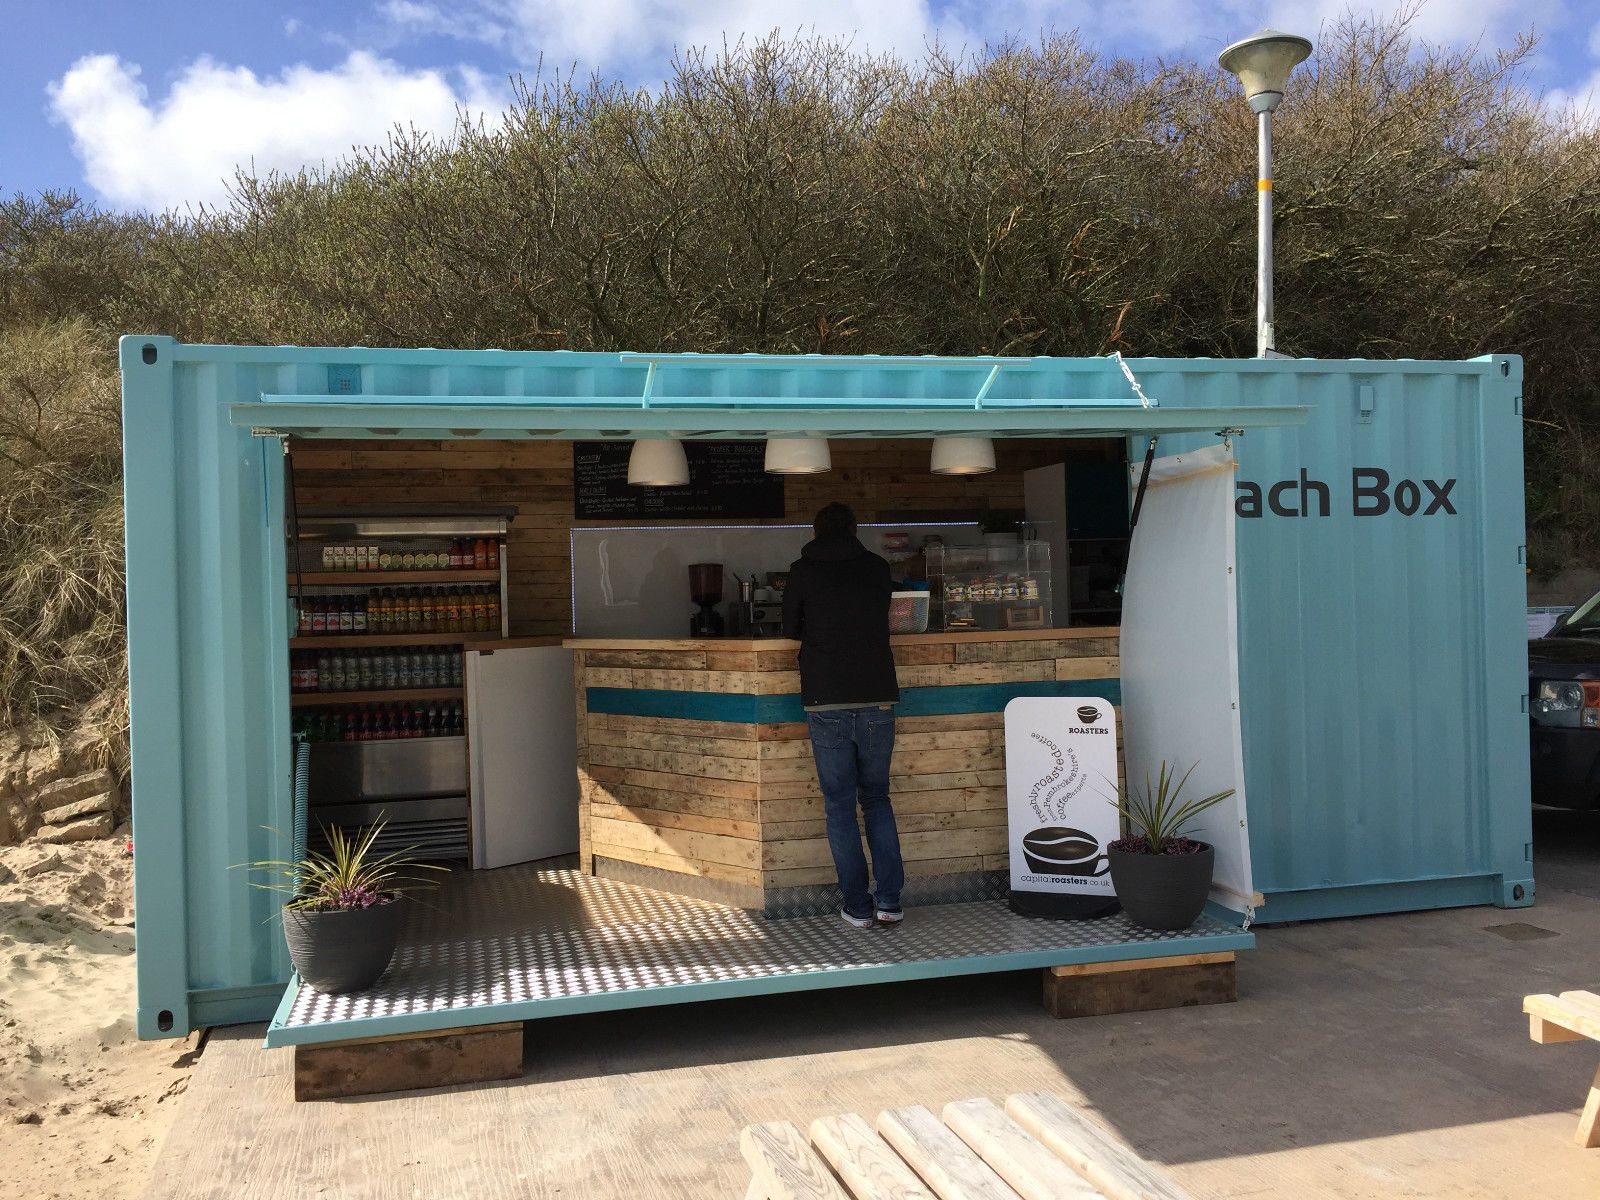 Quality Container Conversion Into Take Away Cafe Inspiration